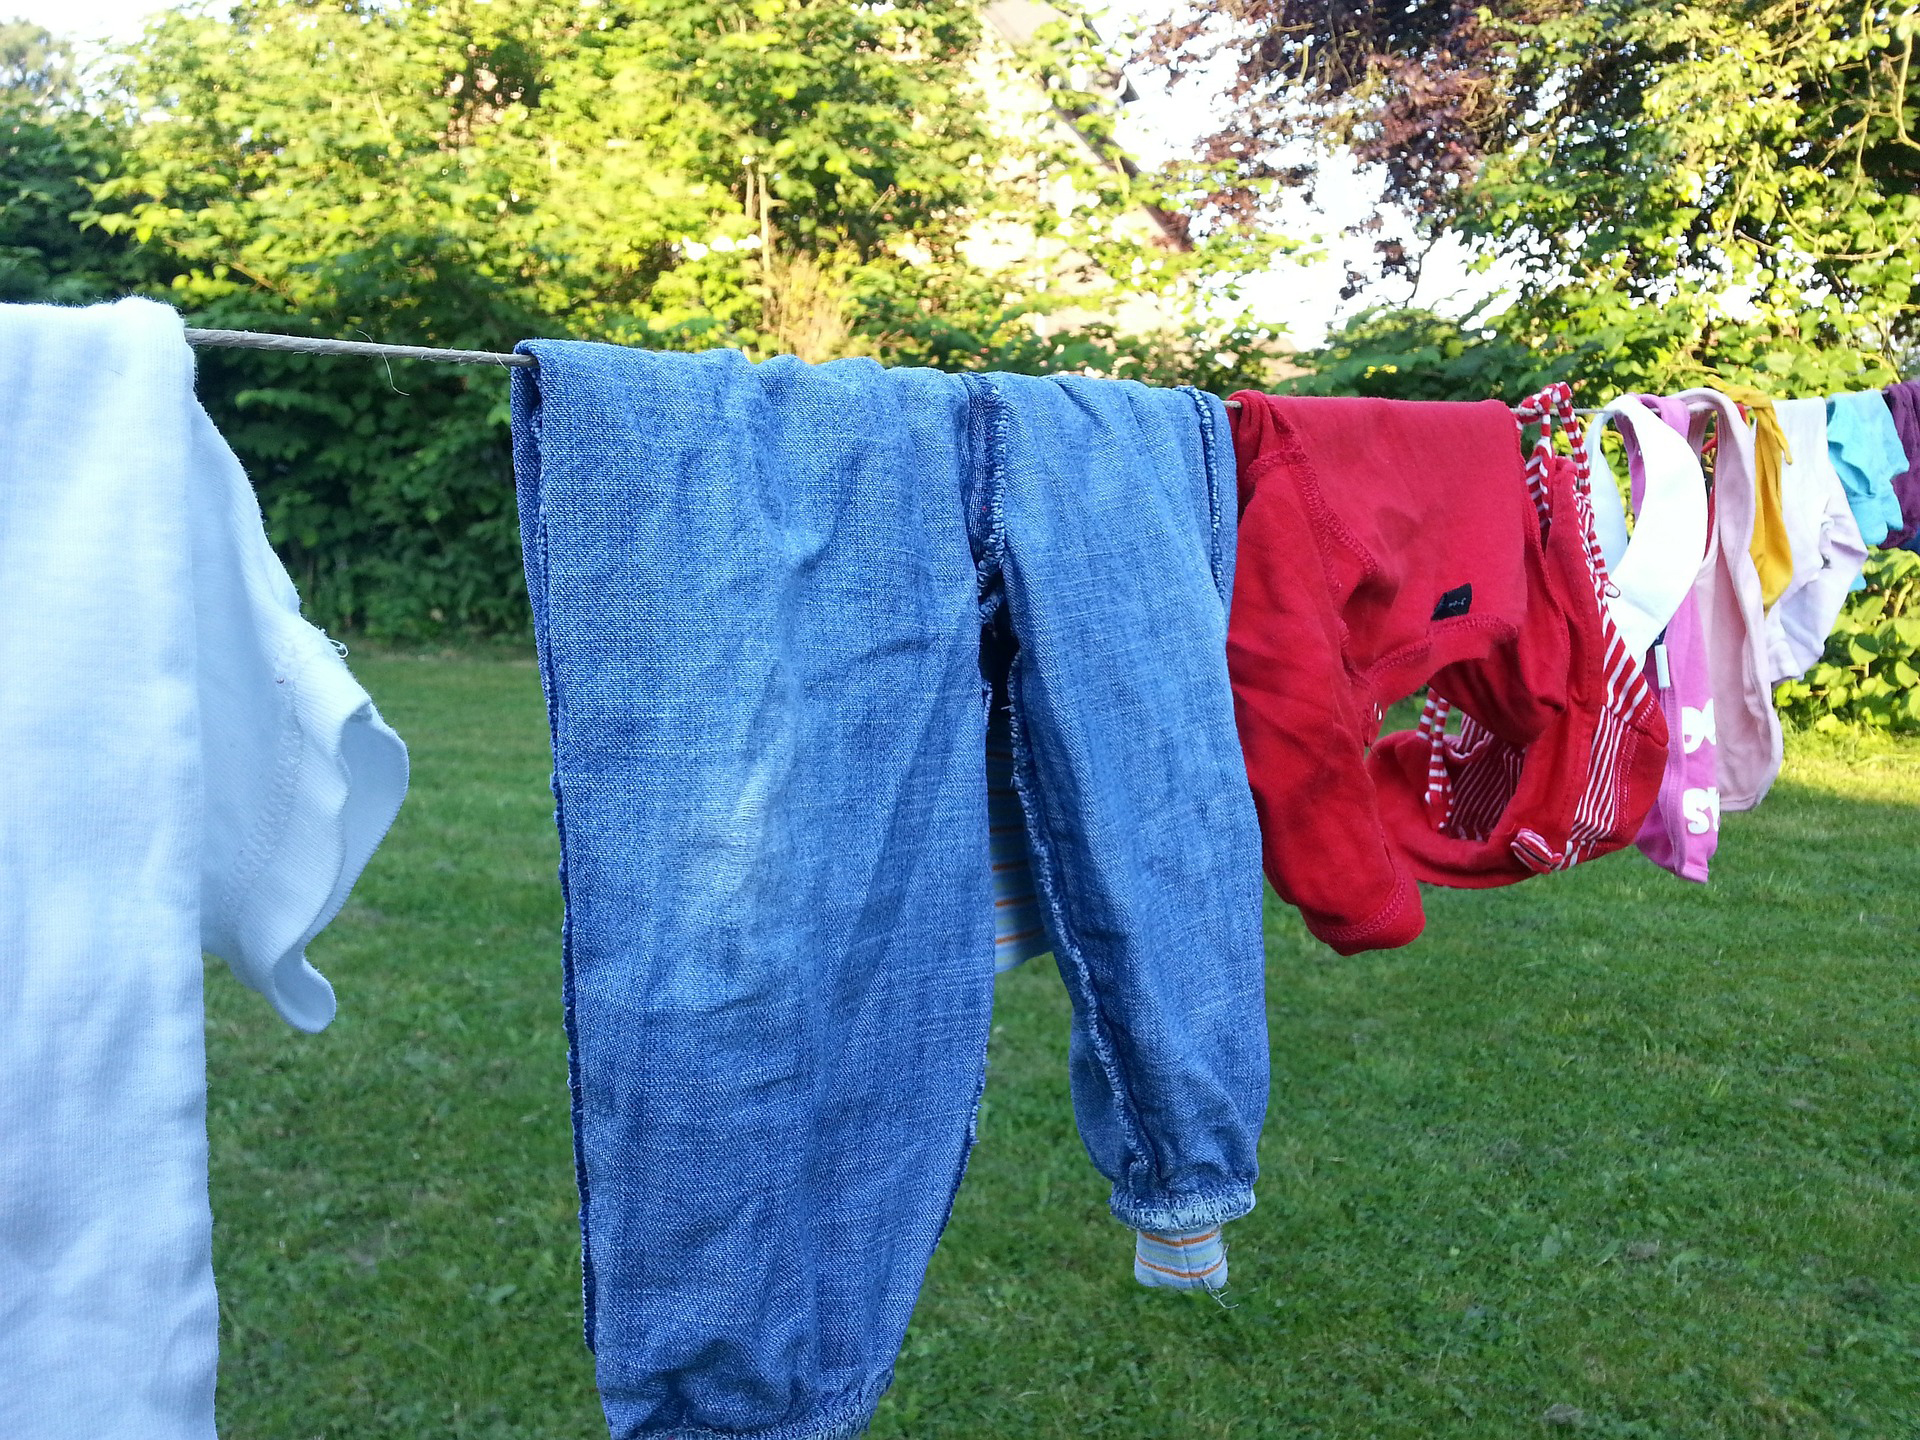 Stain Removal How To Get Stains Out Of Clothes The Old